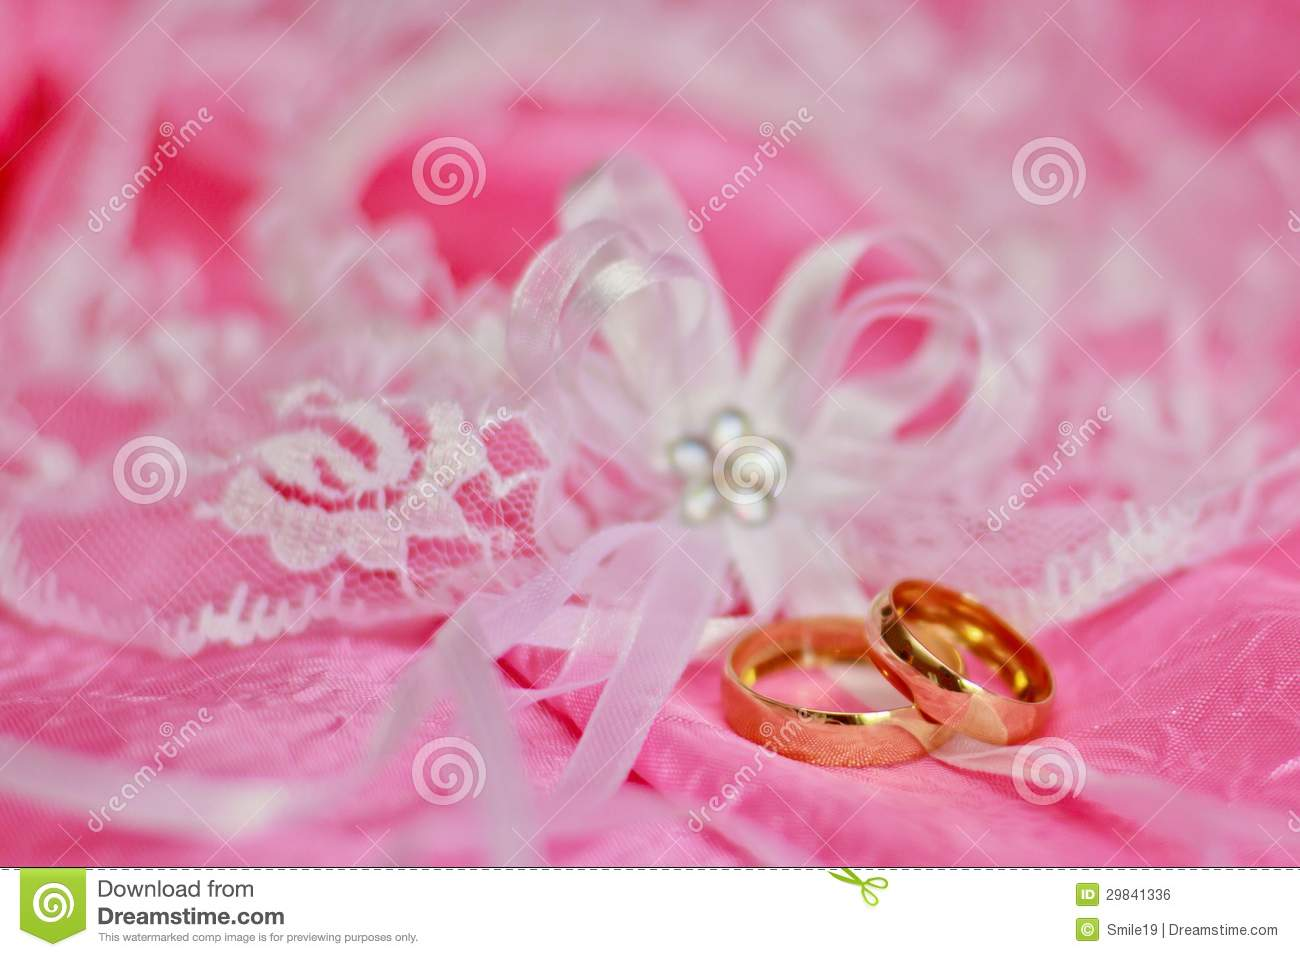 Weeding rings stock photo. Image of golden, holding, decoration ...